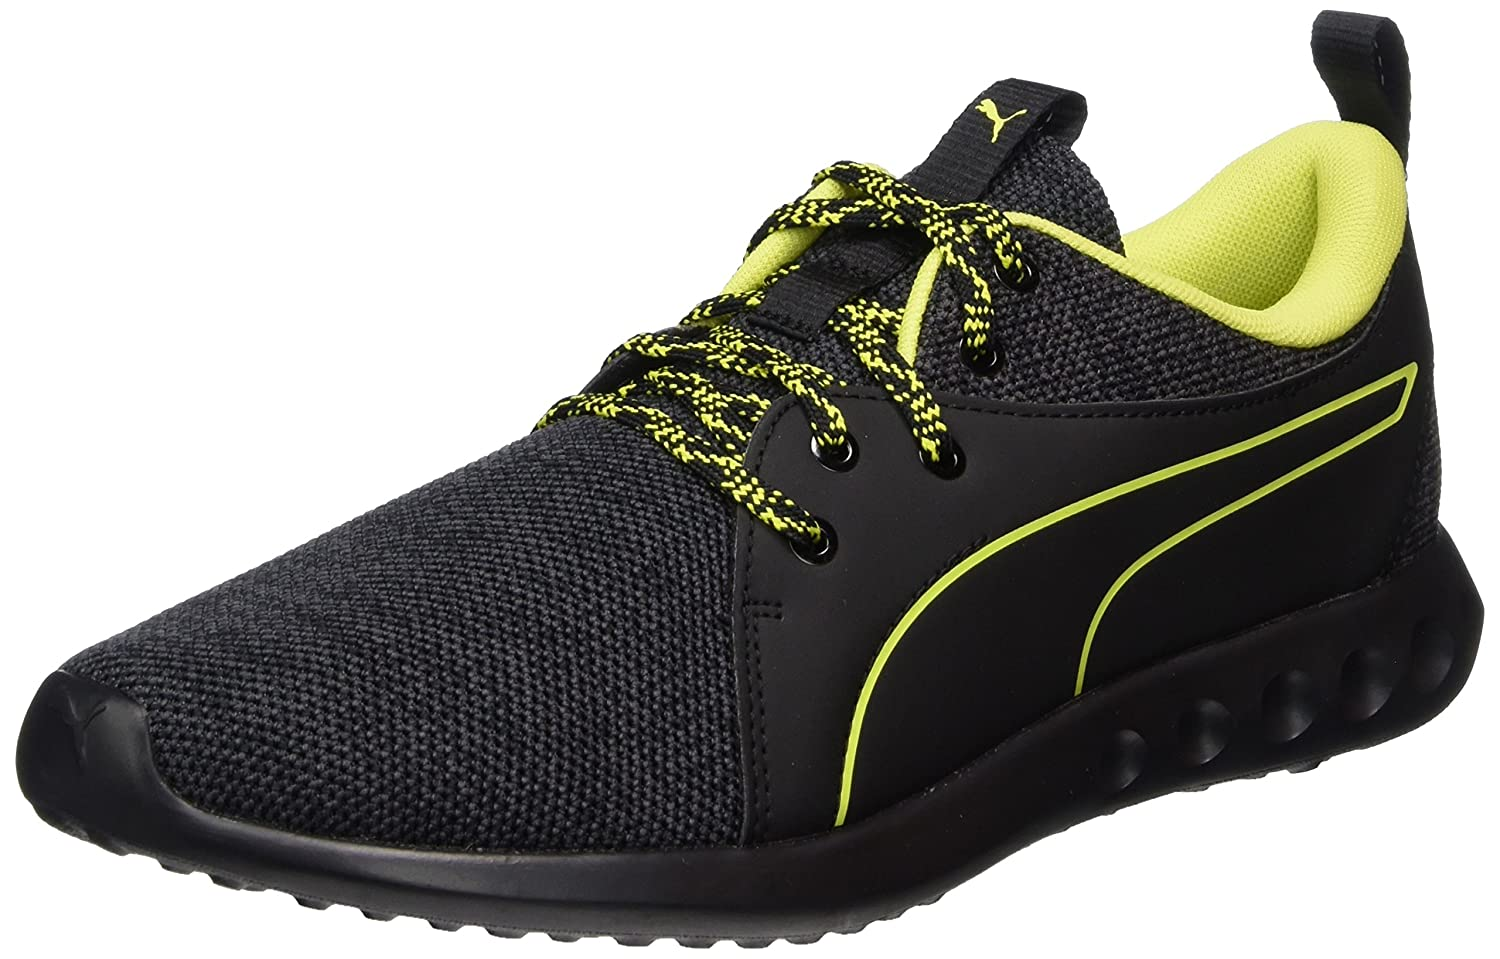 ce3d6a892f0bf8 Puma Men s Carson 2 Terrain Black-Quiet Shade-Nrgy Yellow Running Shoes - 8  UK India (42 EU)  Buy Online at Low Prices in India - Amazon.in